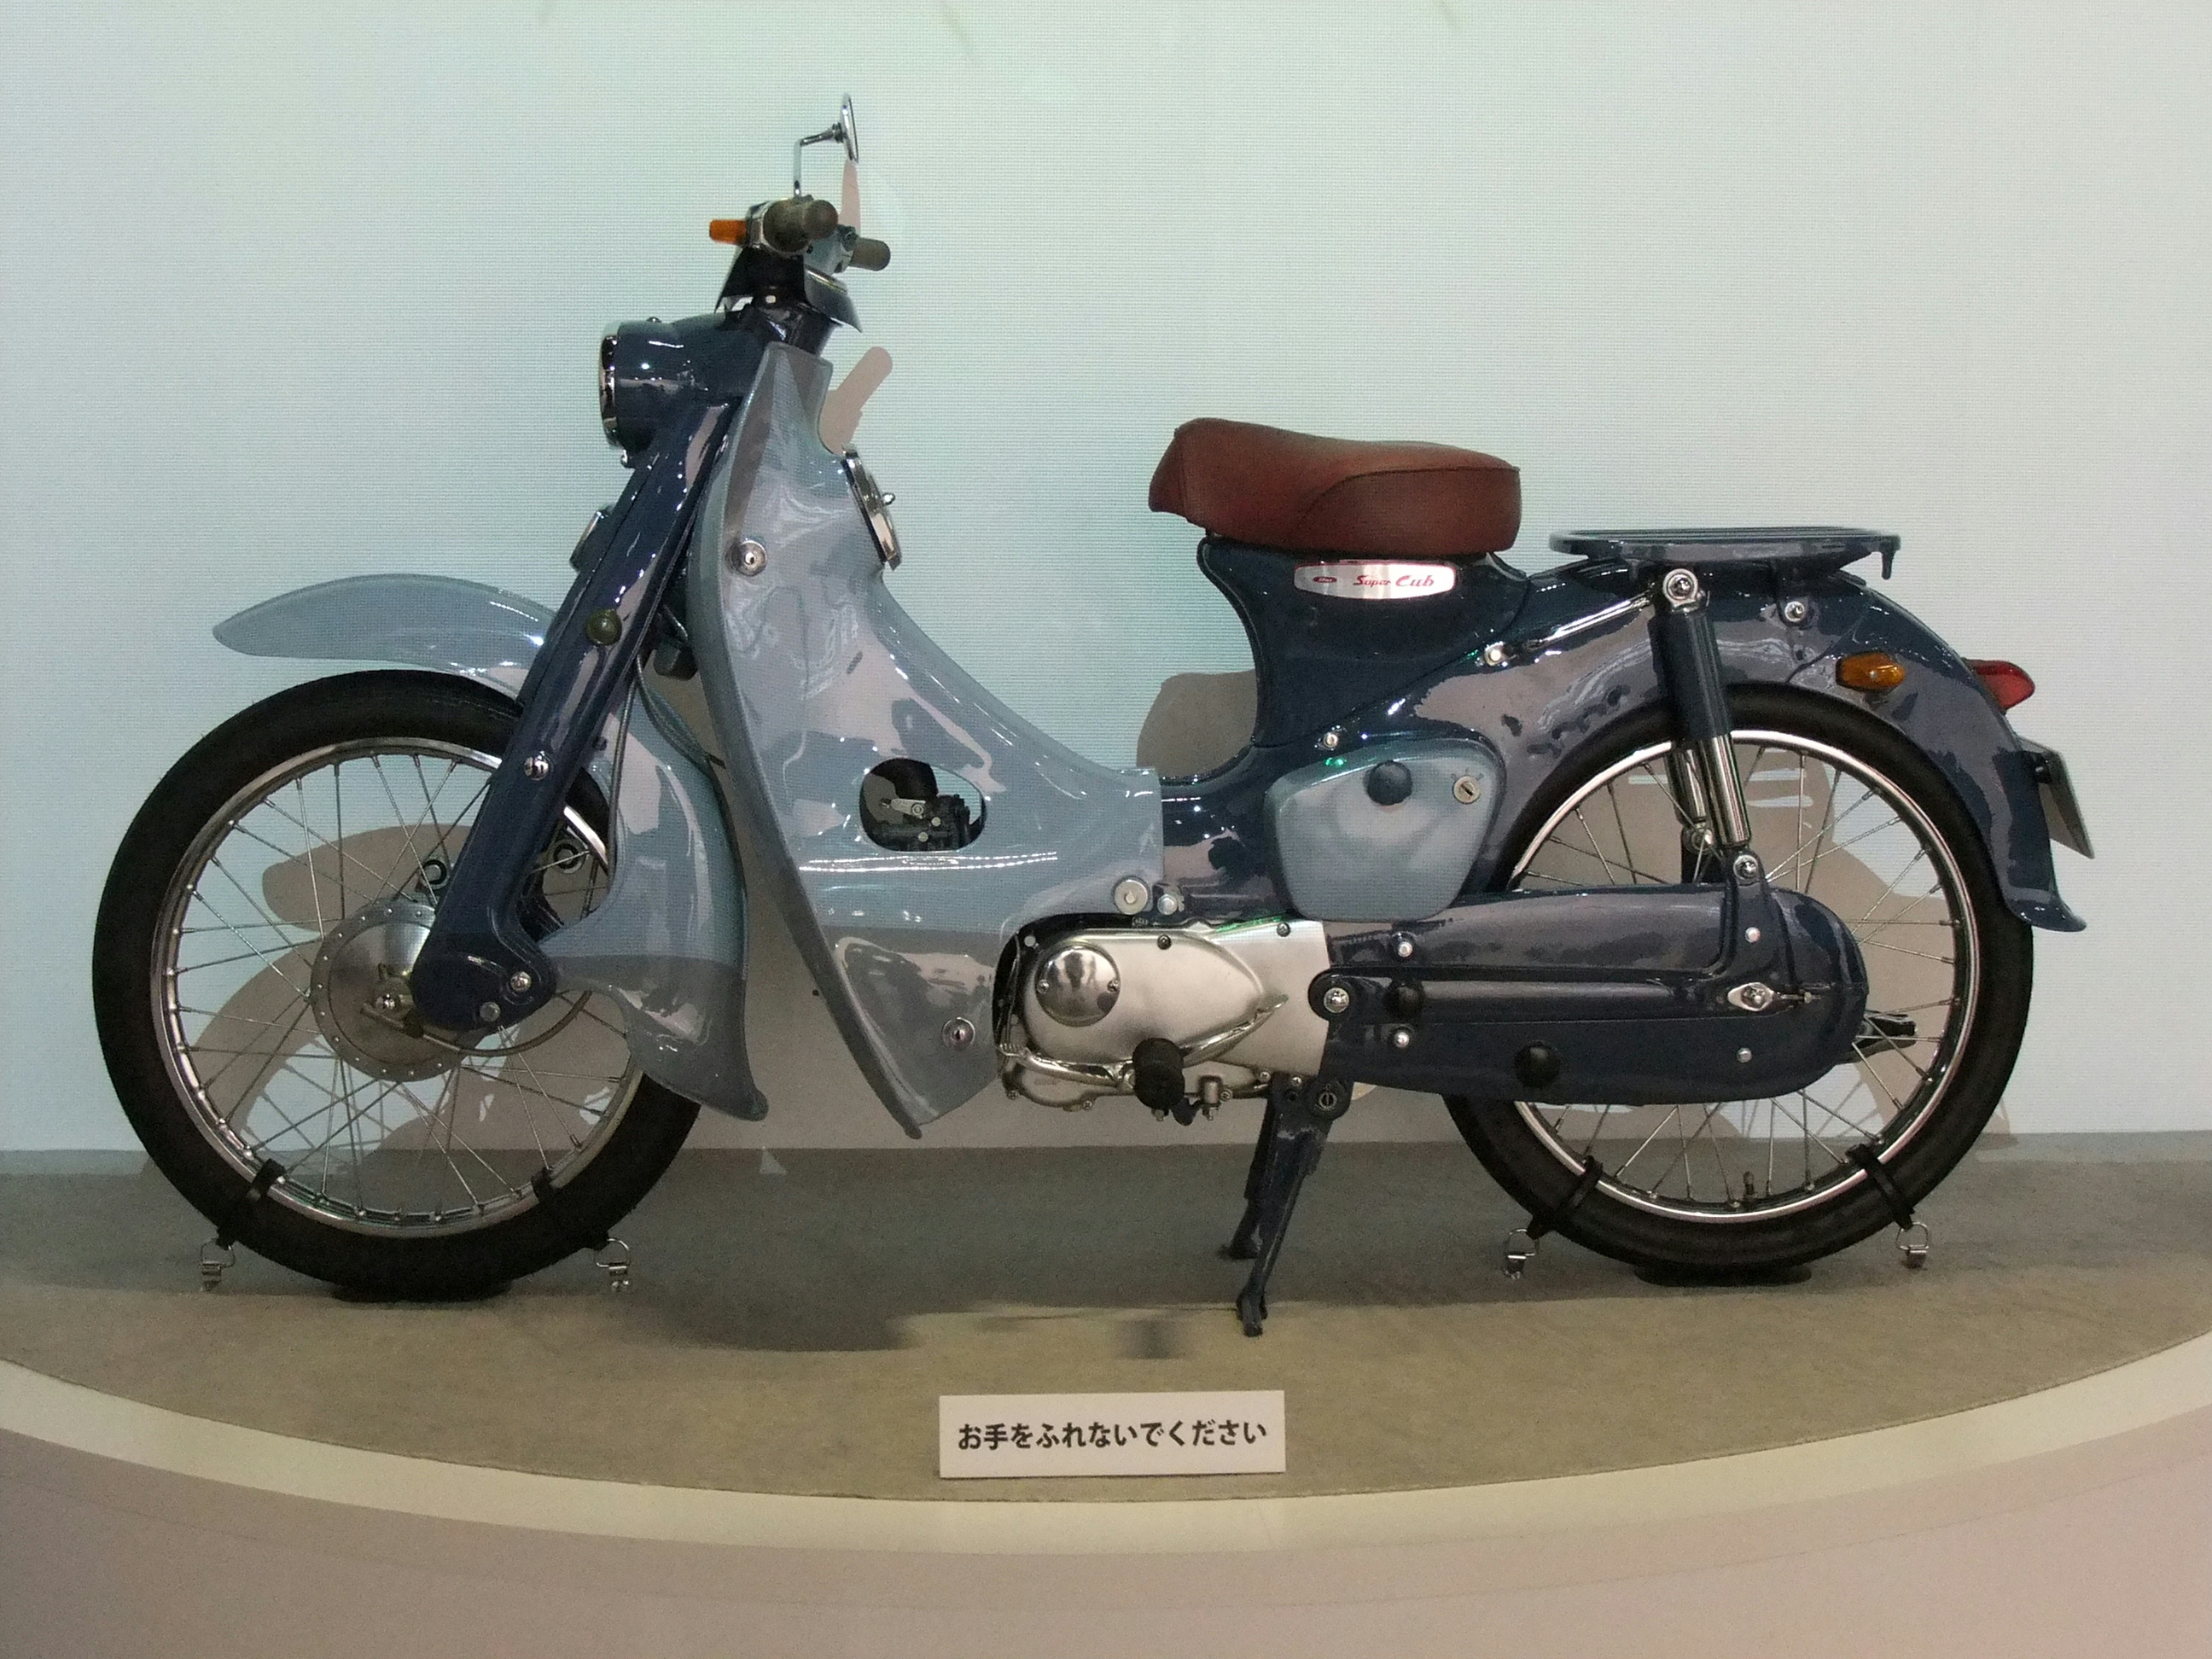 Honda Super Cub Wikipedia